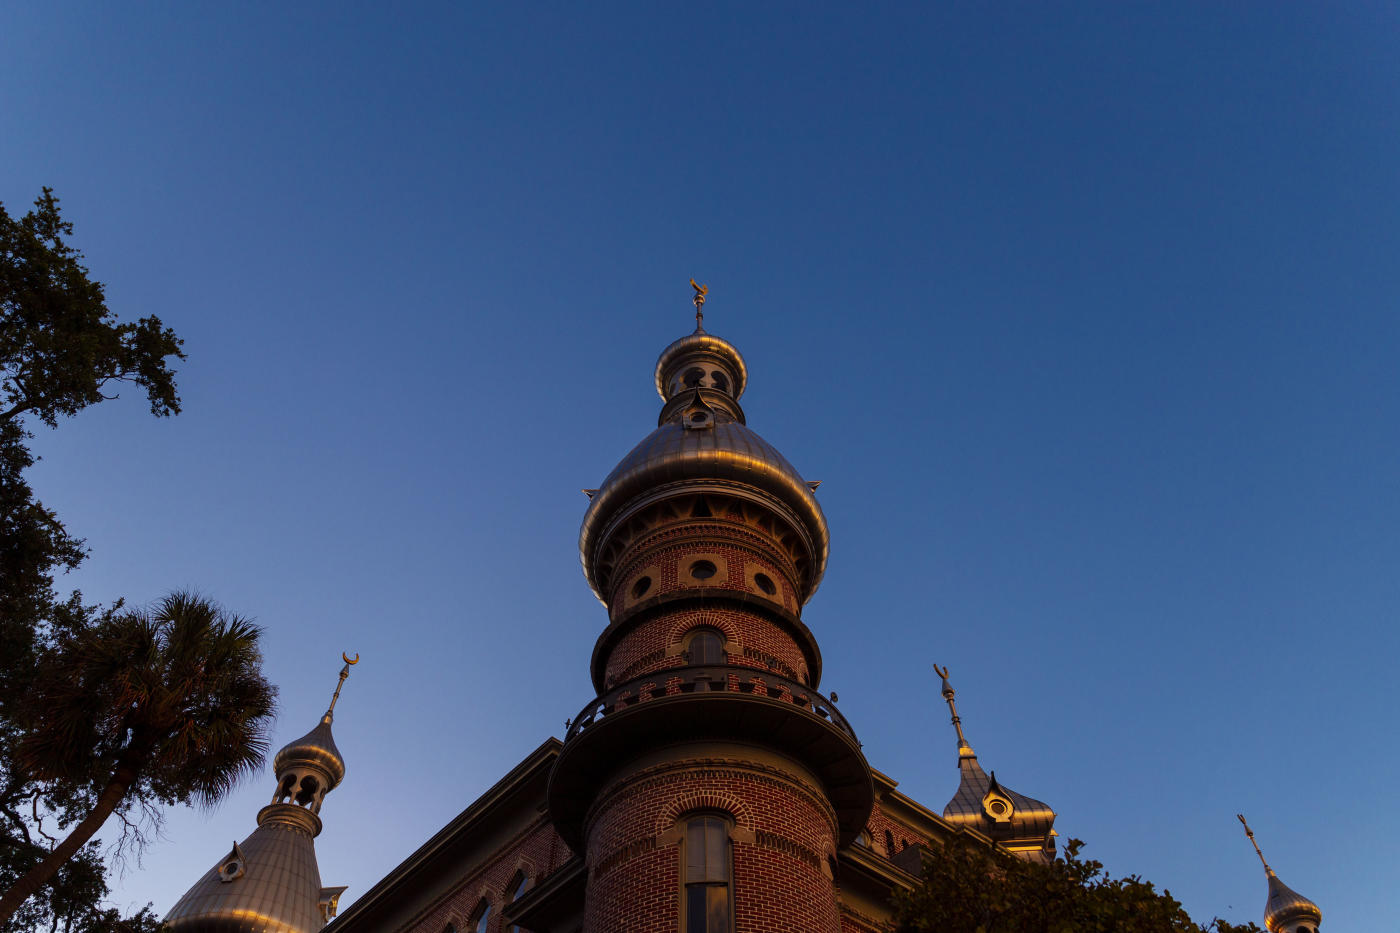 Pictured Above: Minarets on top of the Henry B. Plant Museum